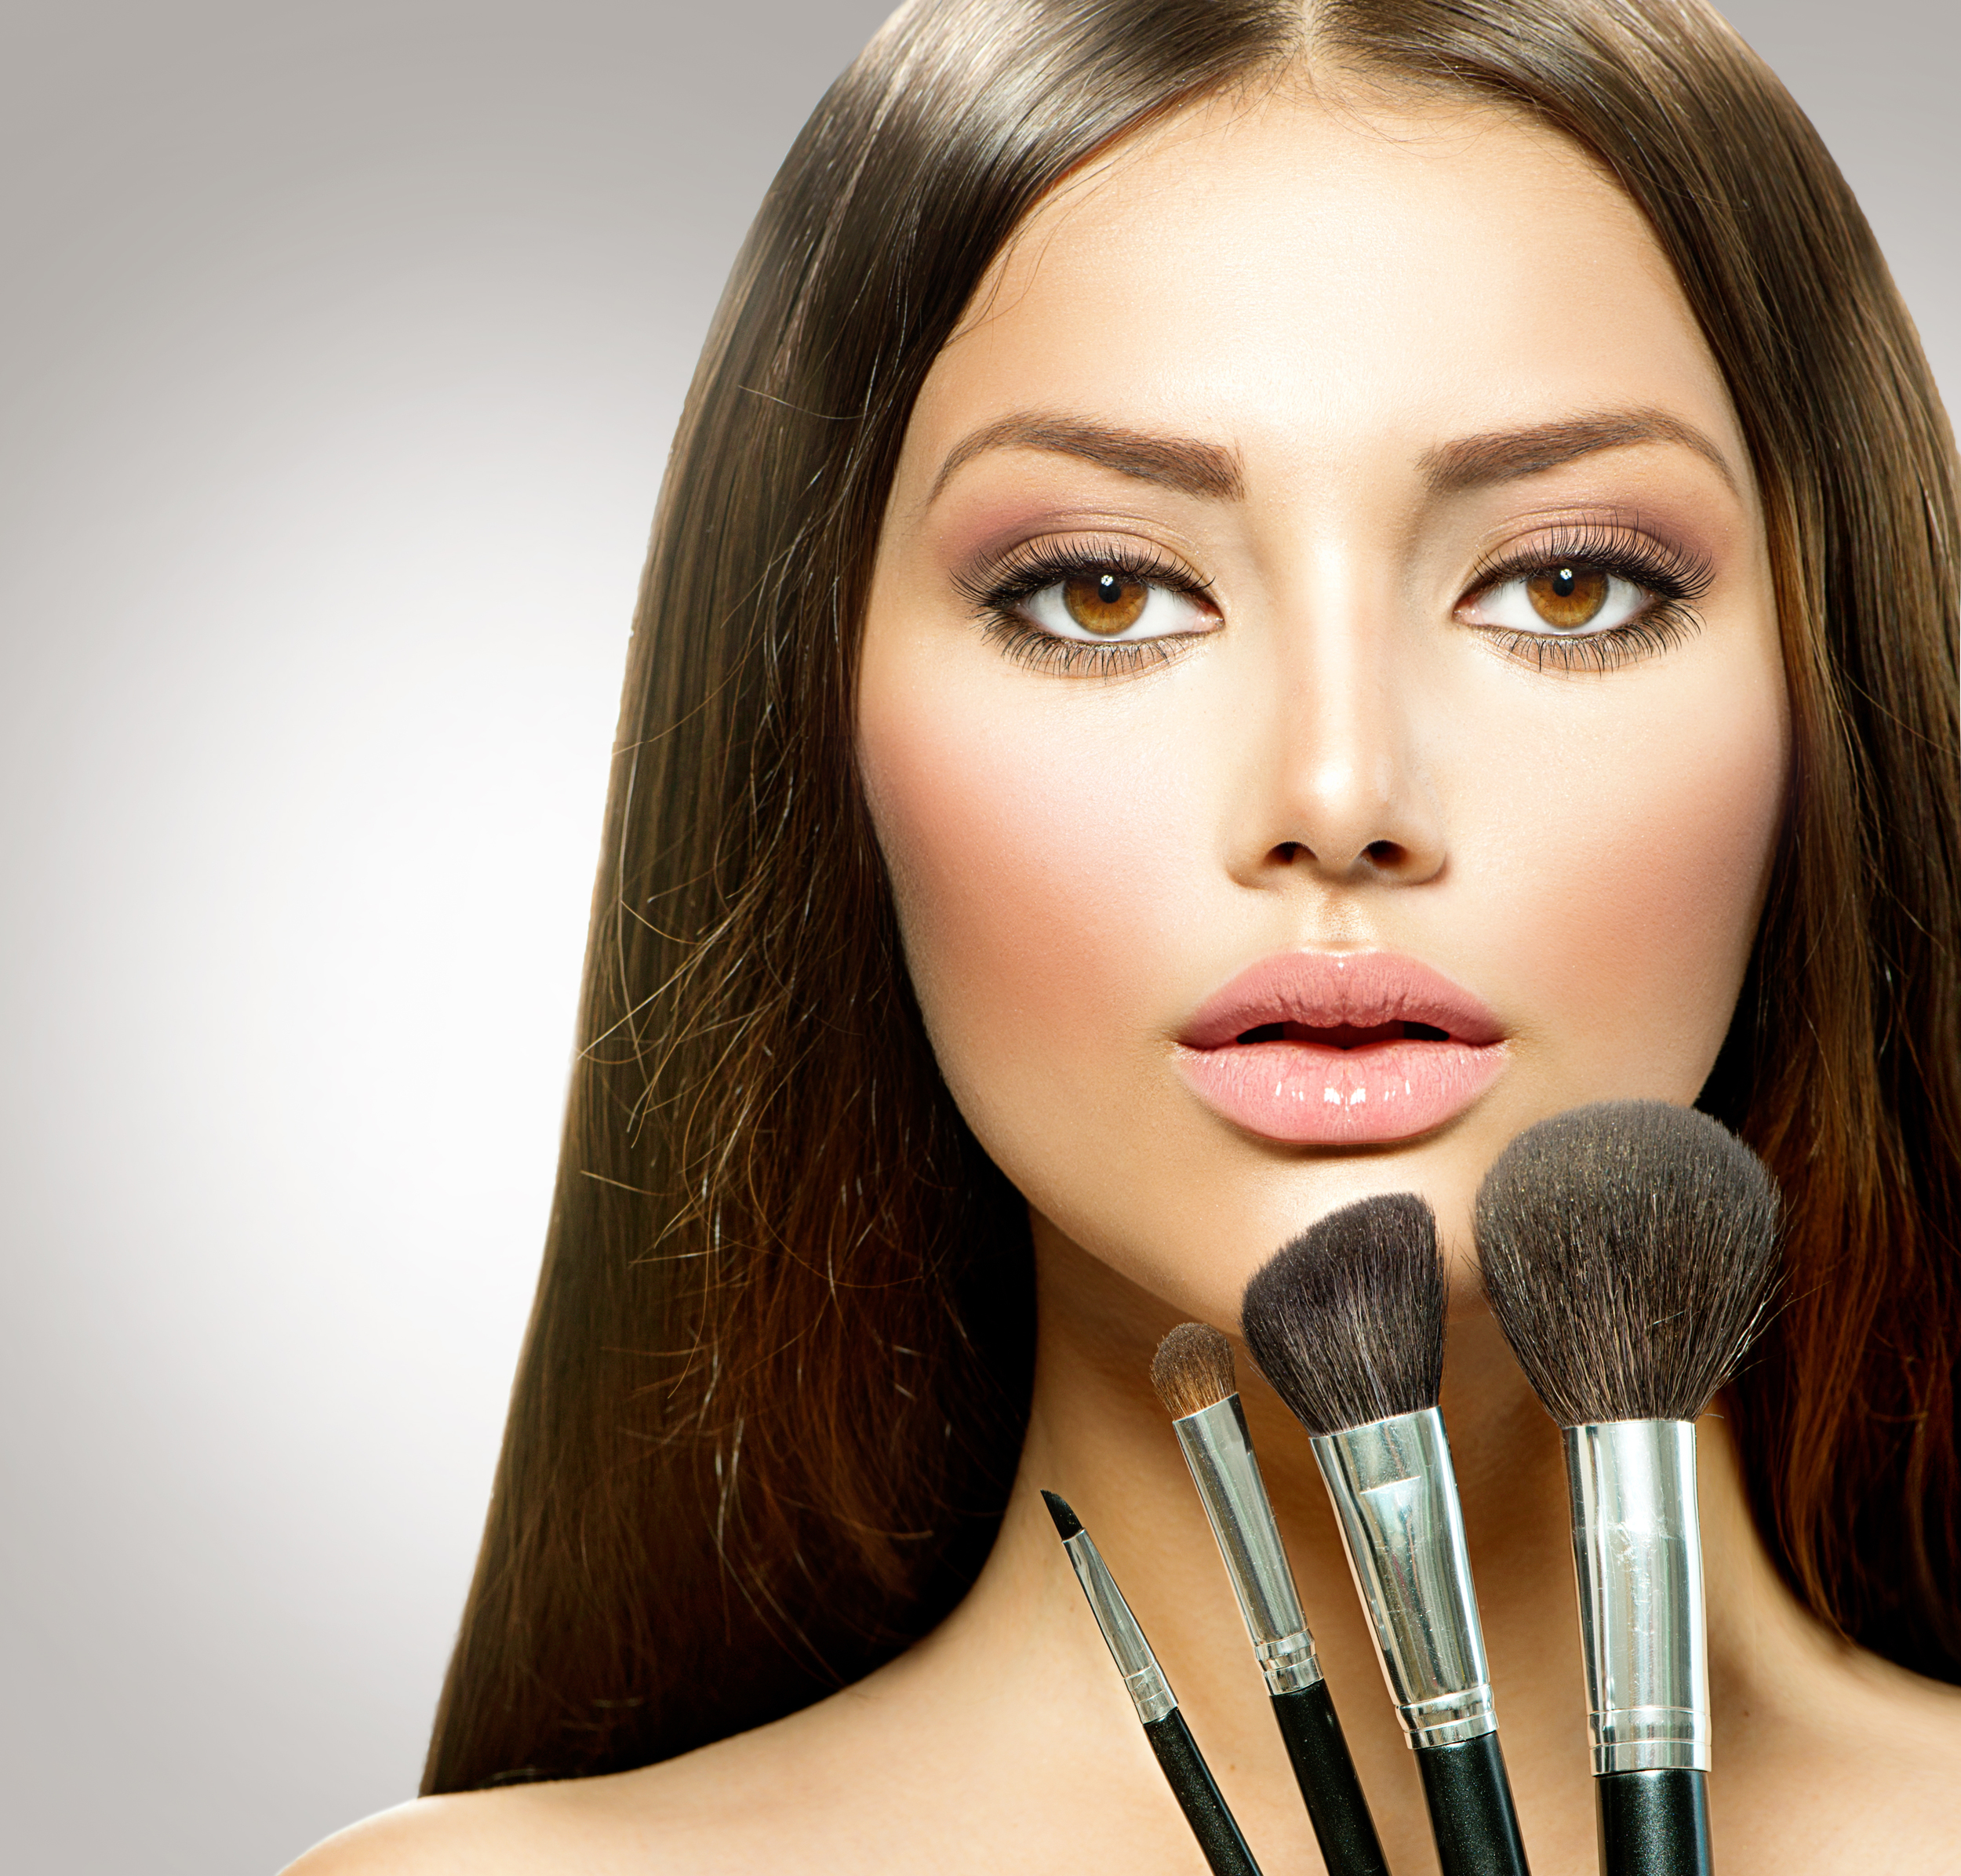 bigstock-Beauty-Girl-with-Makeup-Brushe-46084954.jpg